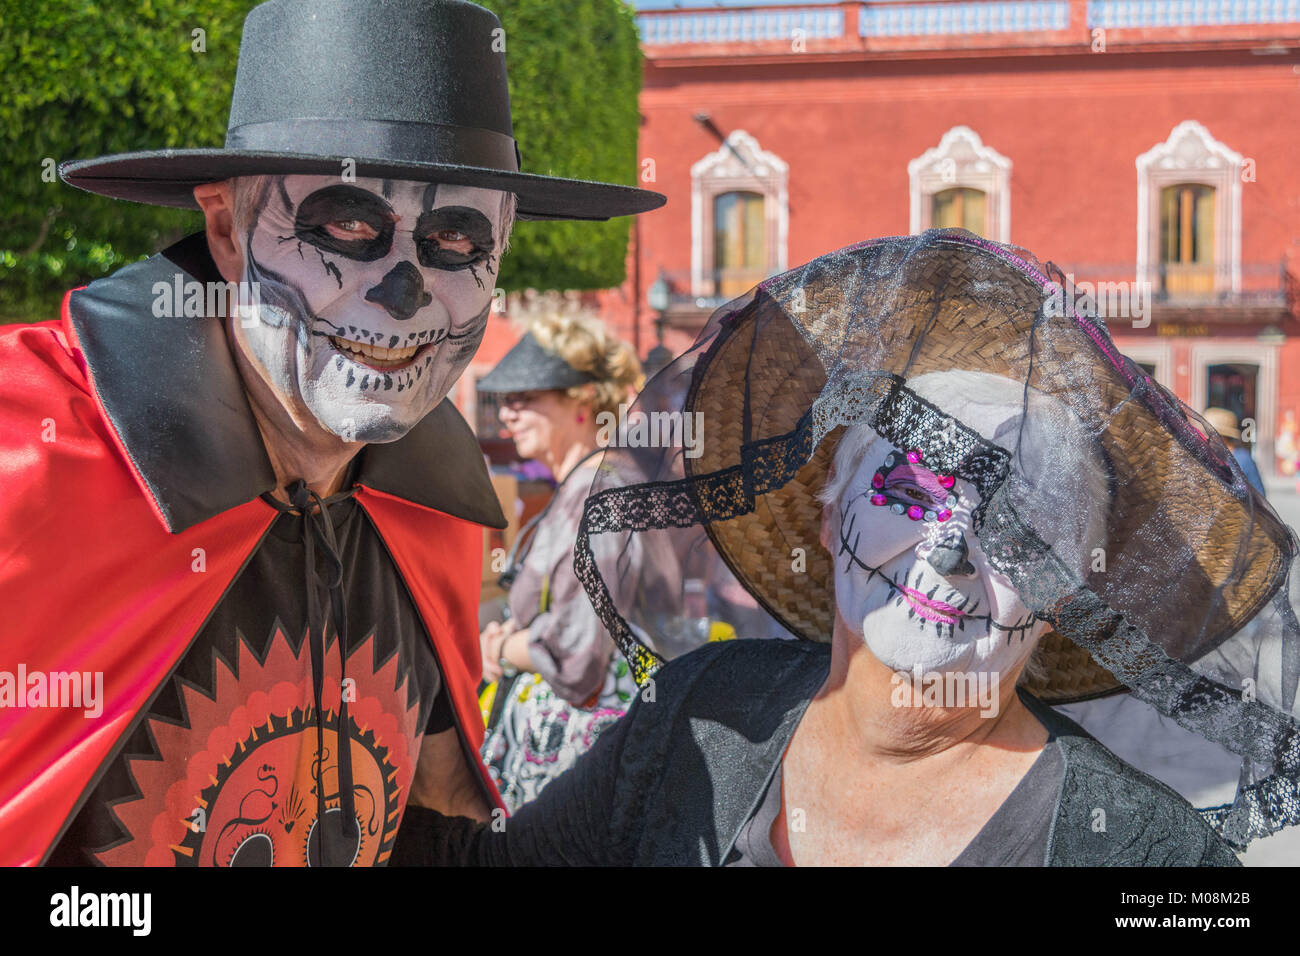 Man and woman in costumes with painted faces, a black bolero hat for him, and a straw hat with black veil for her, - Stock Image